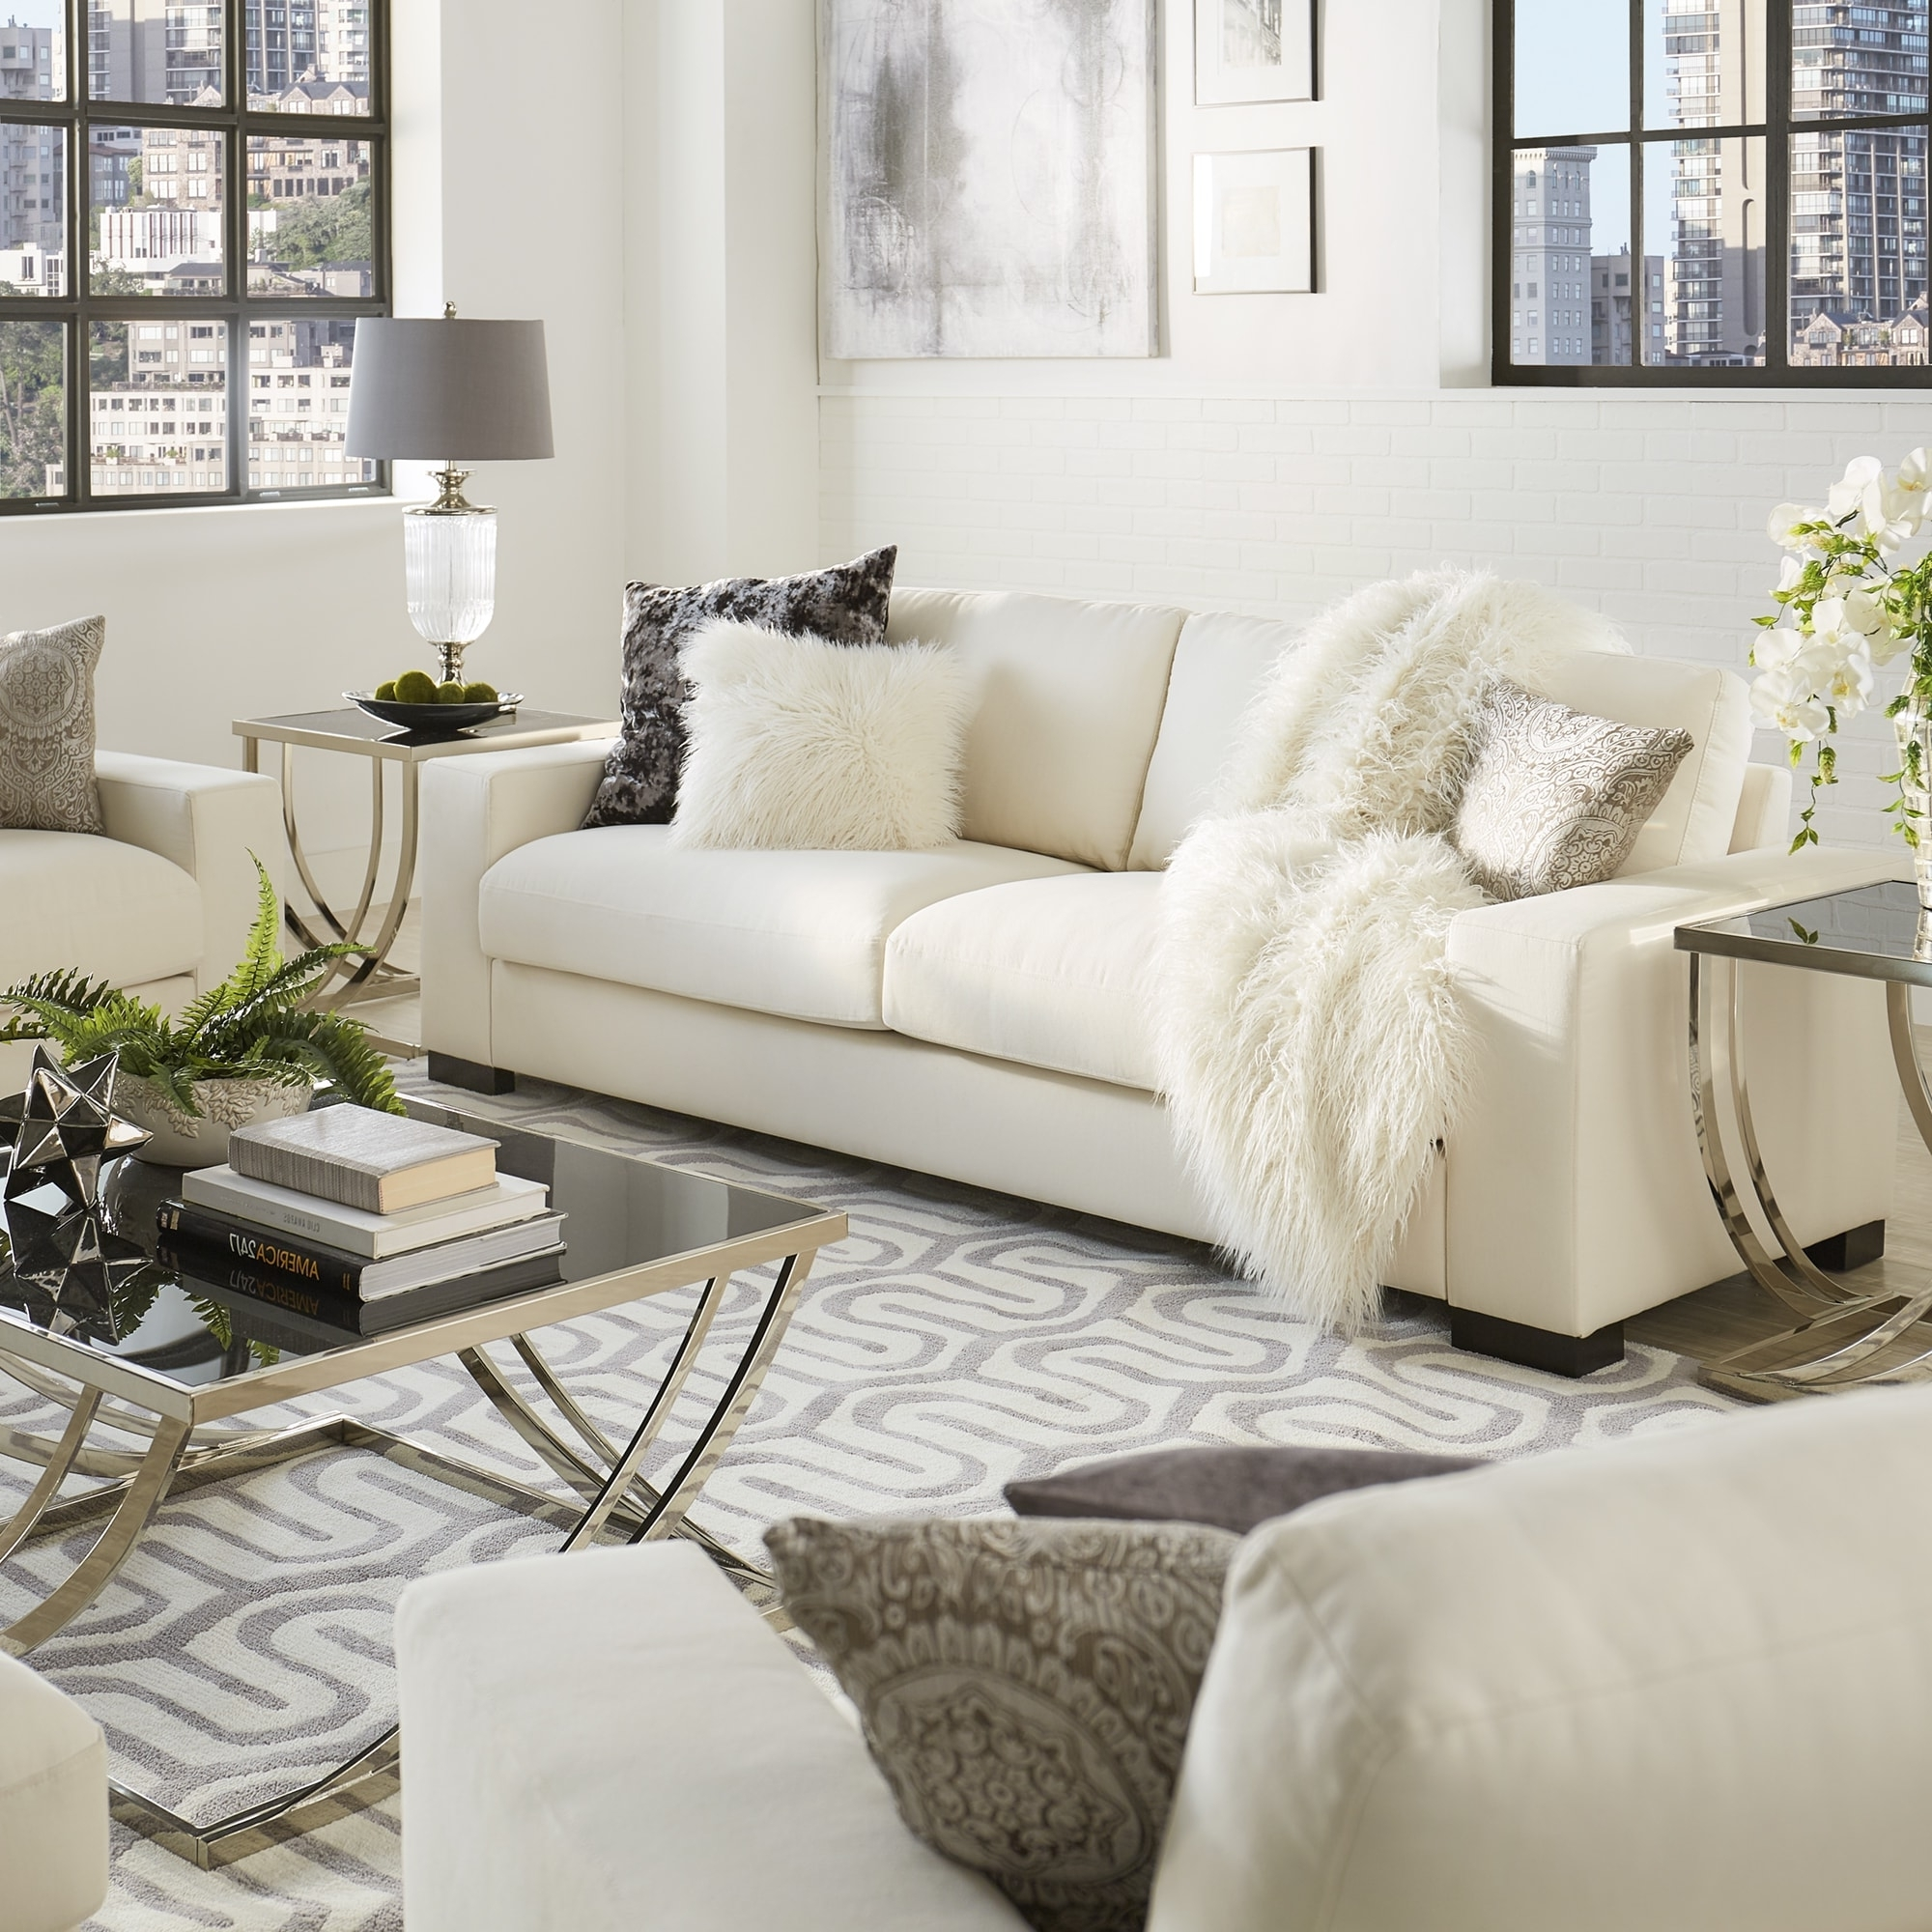 Lionel Modern White Fabric Down Filled Sofainspire Q Artisan Intended For Fashionable Down Filled Sofas (View 10 of 15)